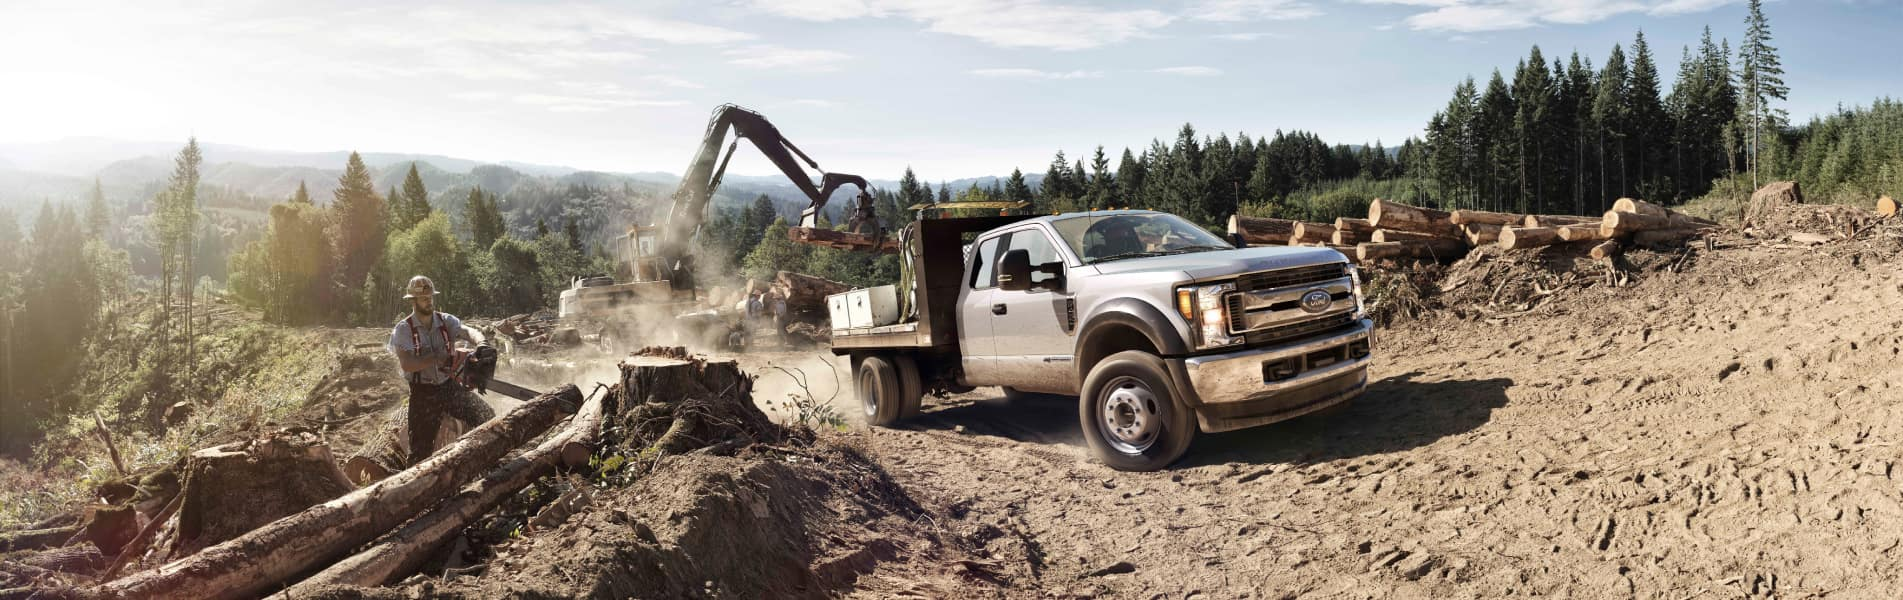 The 2019 Ford F-250 pickup truck available at Sutton Ford Commercial Truck Center